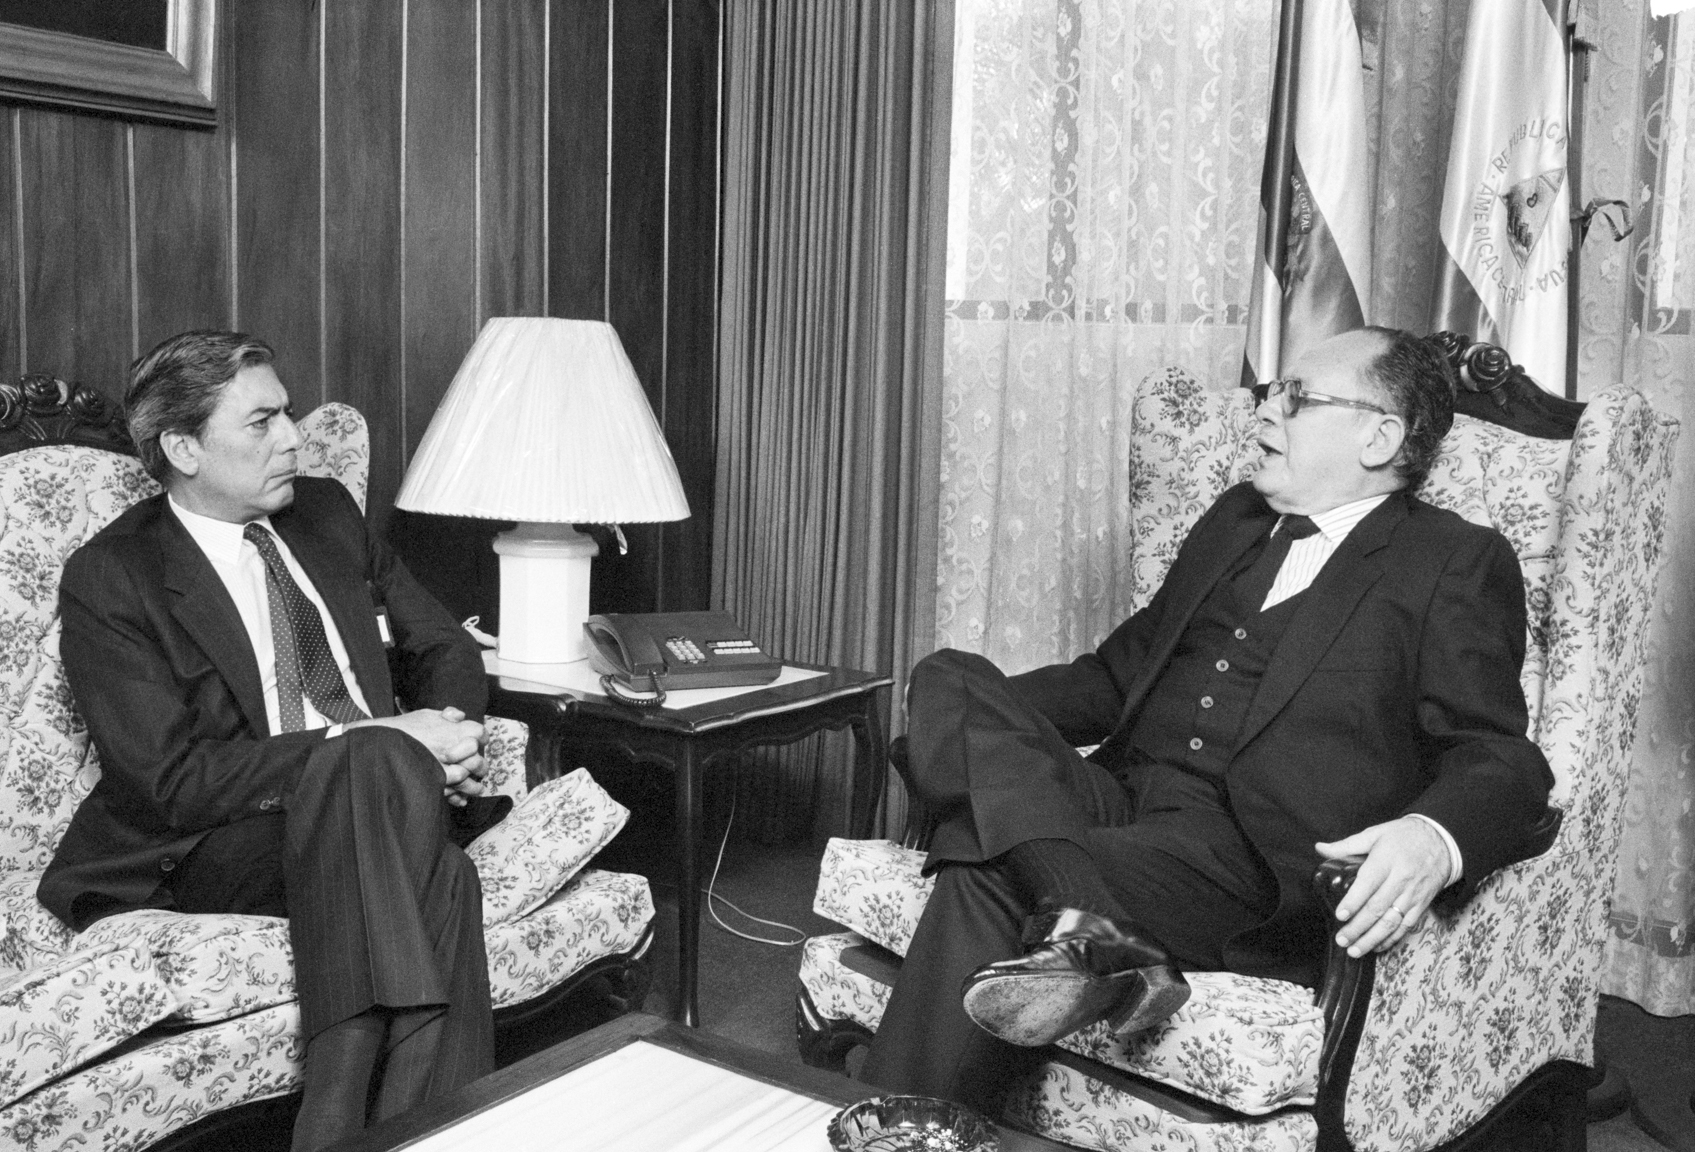 Peruvian author Mario Vargas Llosa, left, interviews Salvadoran President Dr. Alvaro Magaña, right, May 10, 1984 at the Presidential Palace in San Salvador, El Salvador. Vargas Llosa was writing about the 1984 Salvadoran presidential elections for Time magazine.